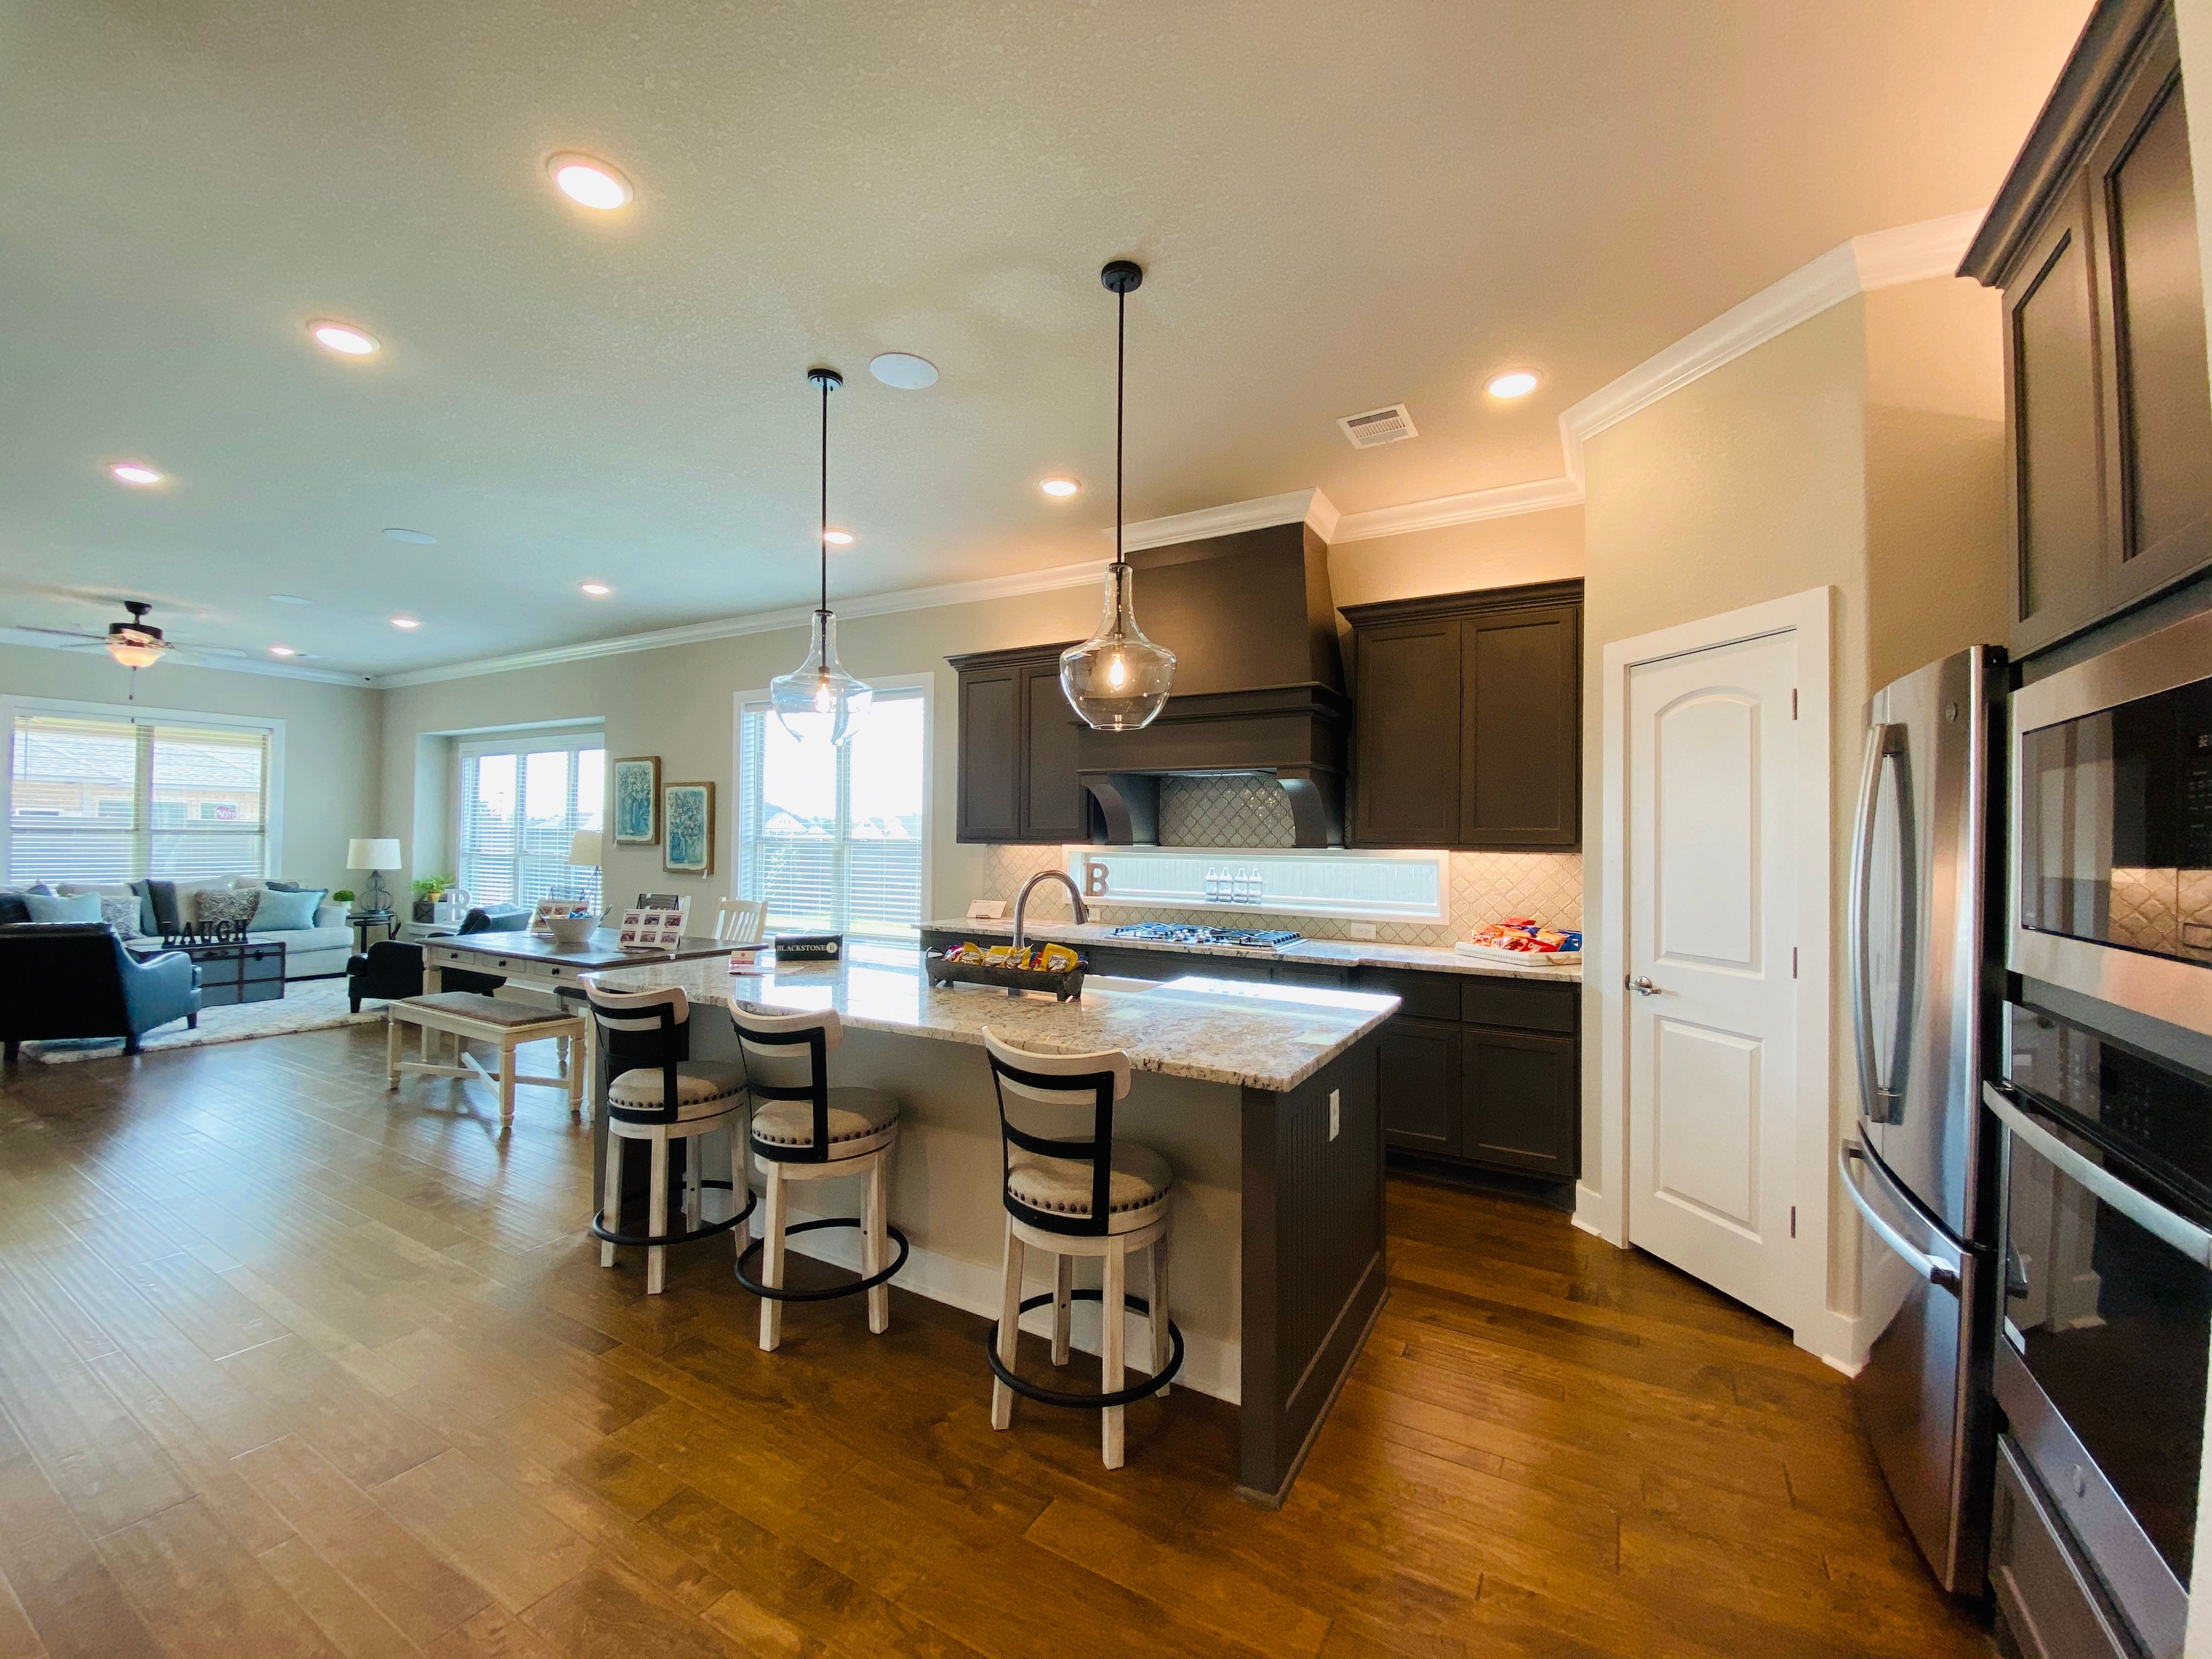 Kitchen featured in the Lindy By Blackstone Homes in Bryan-College Station, TX